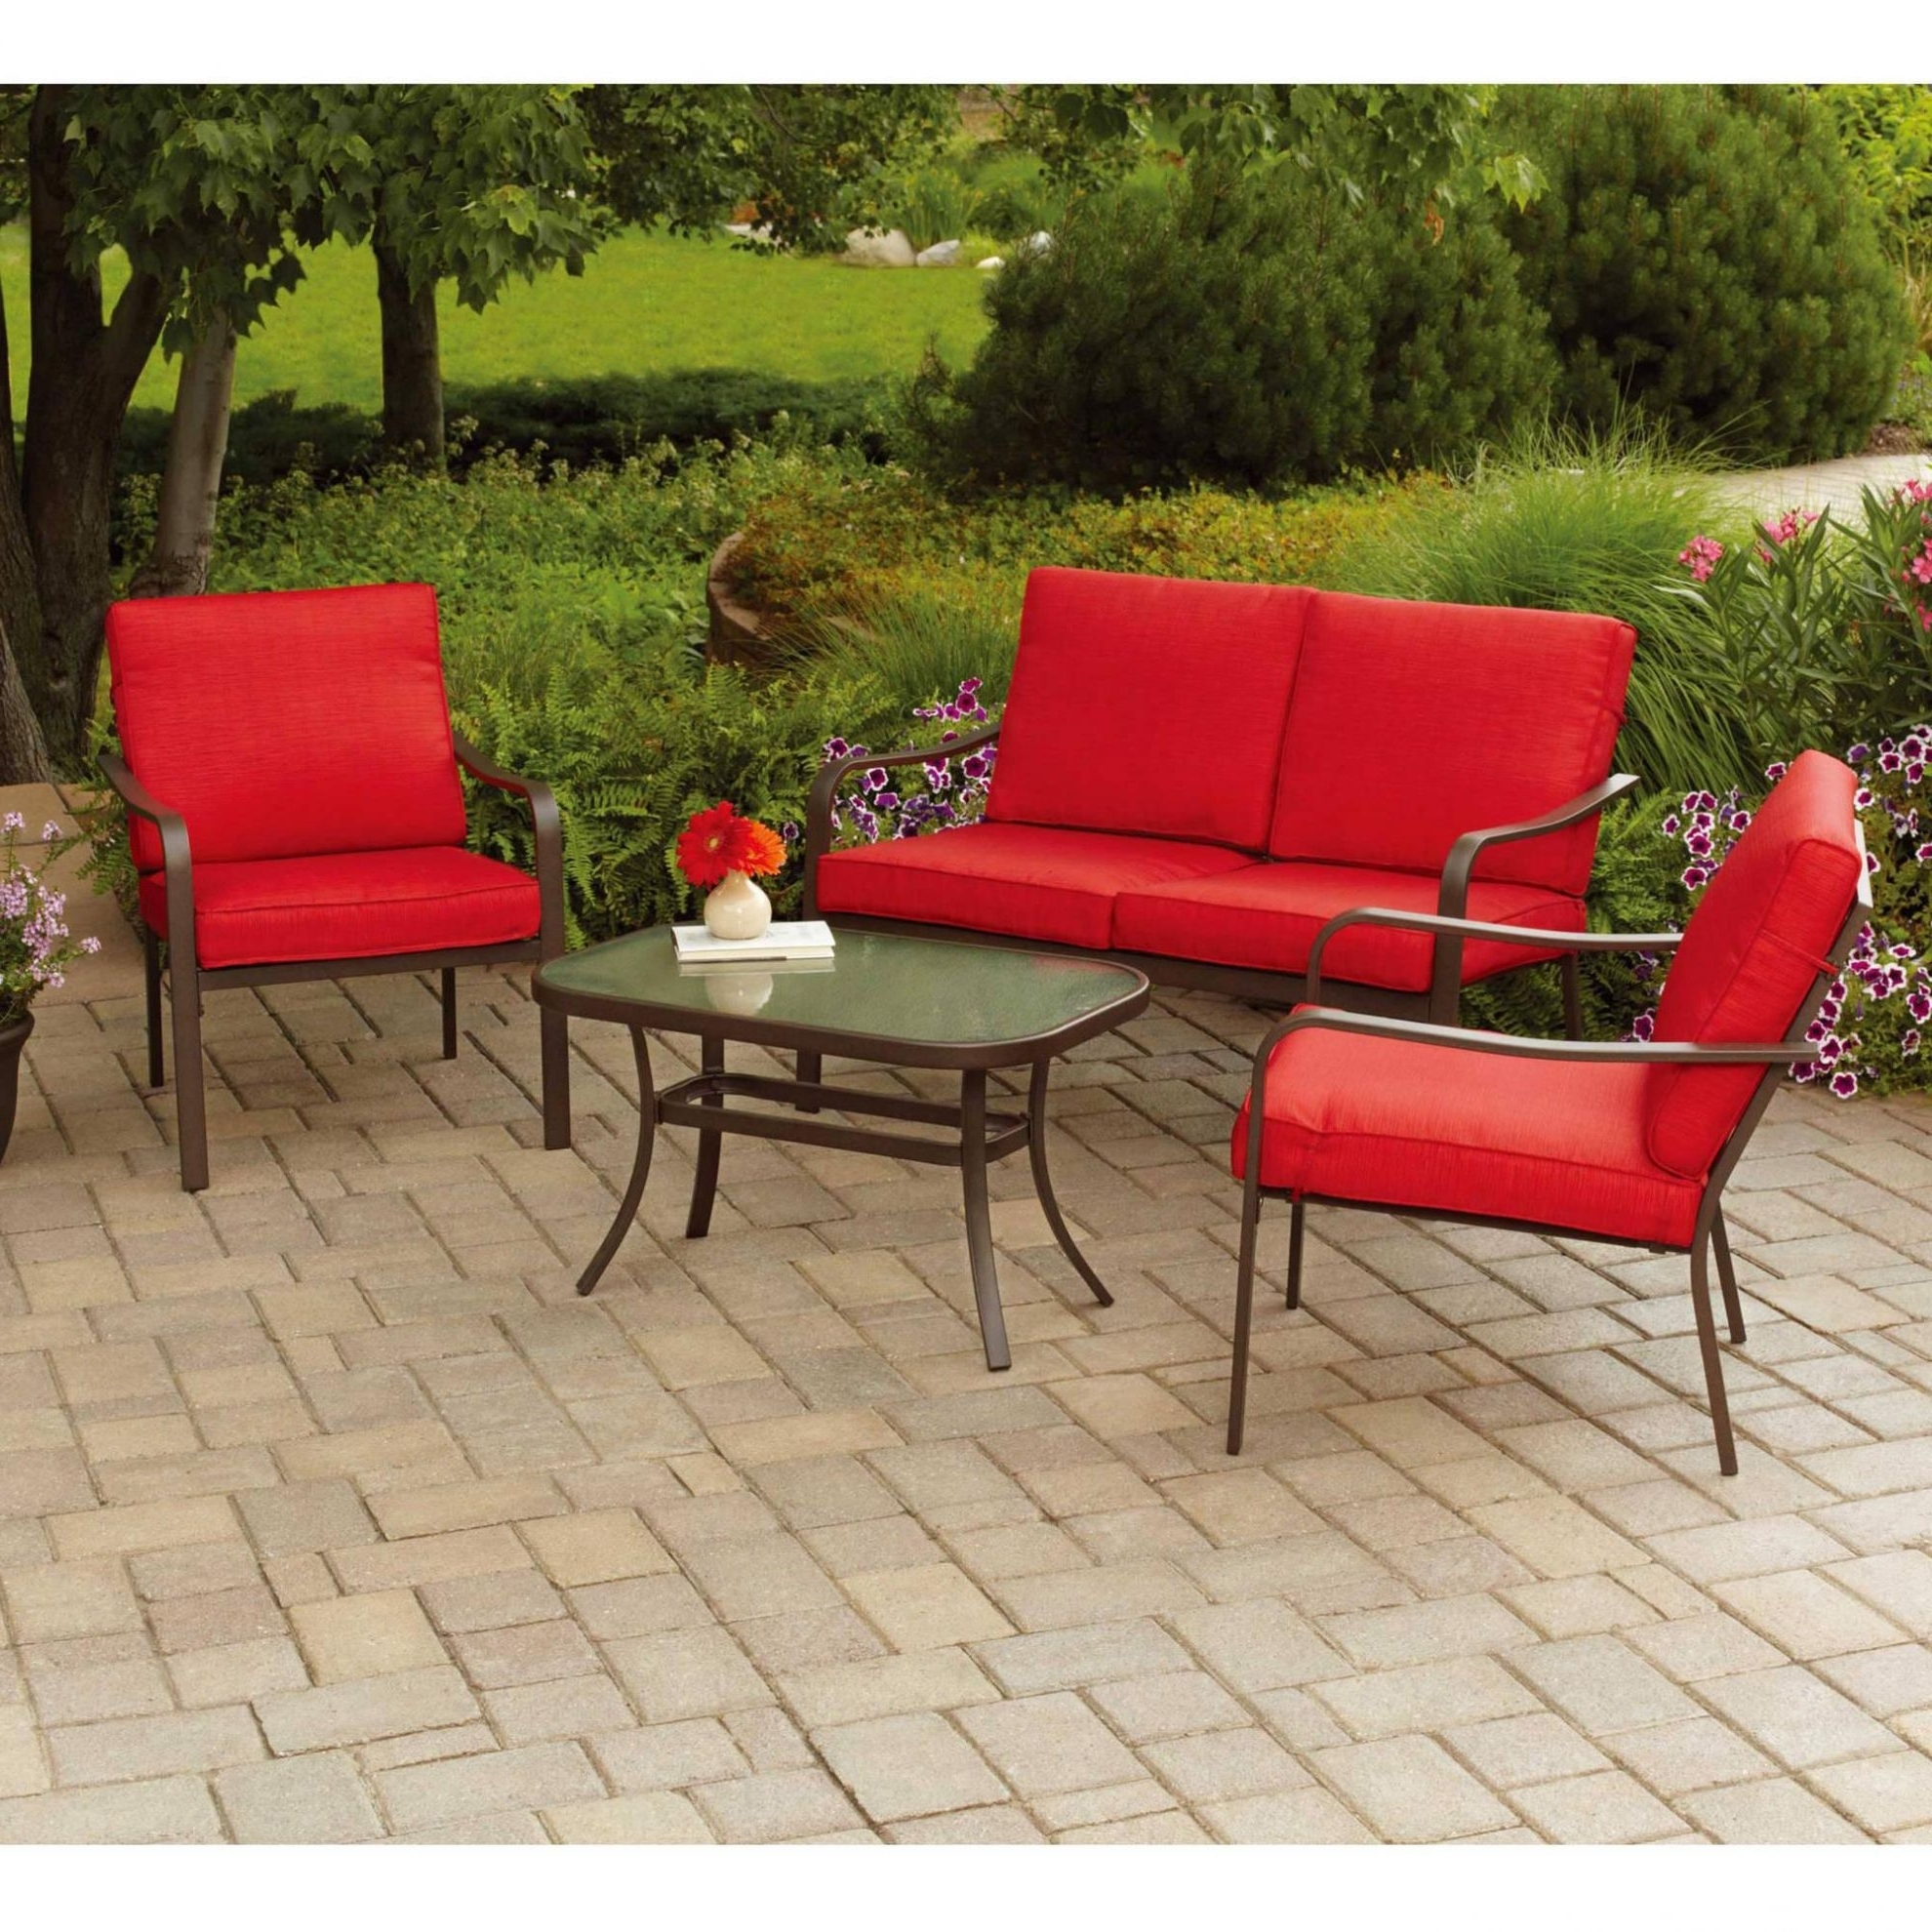 Iron Patio Conversation Sets Inside Most Recent Good Metal Patio Furniture Clearance Photo Gallery #6 Wicker Patio (Gallery 6 of 15)